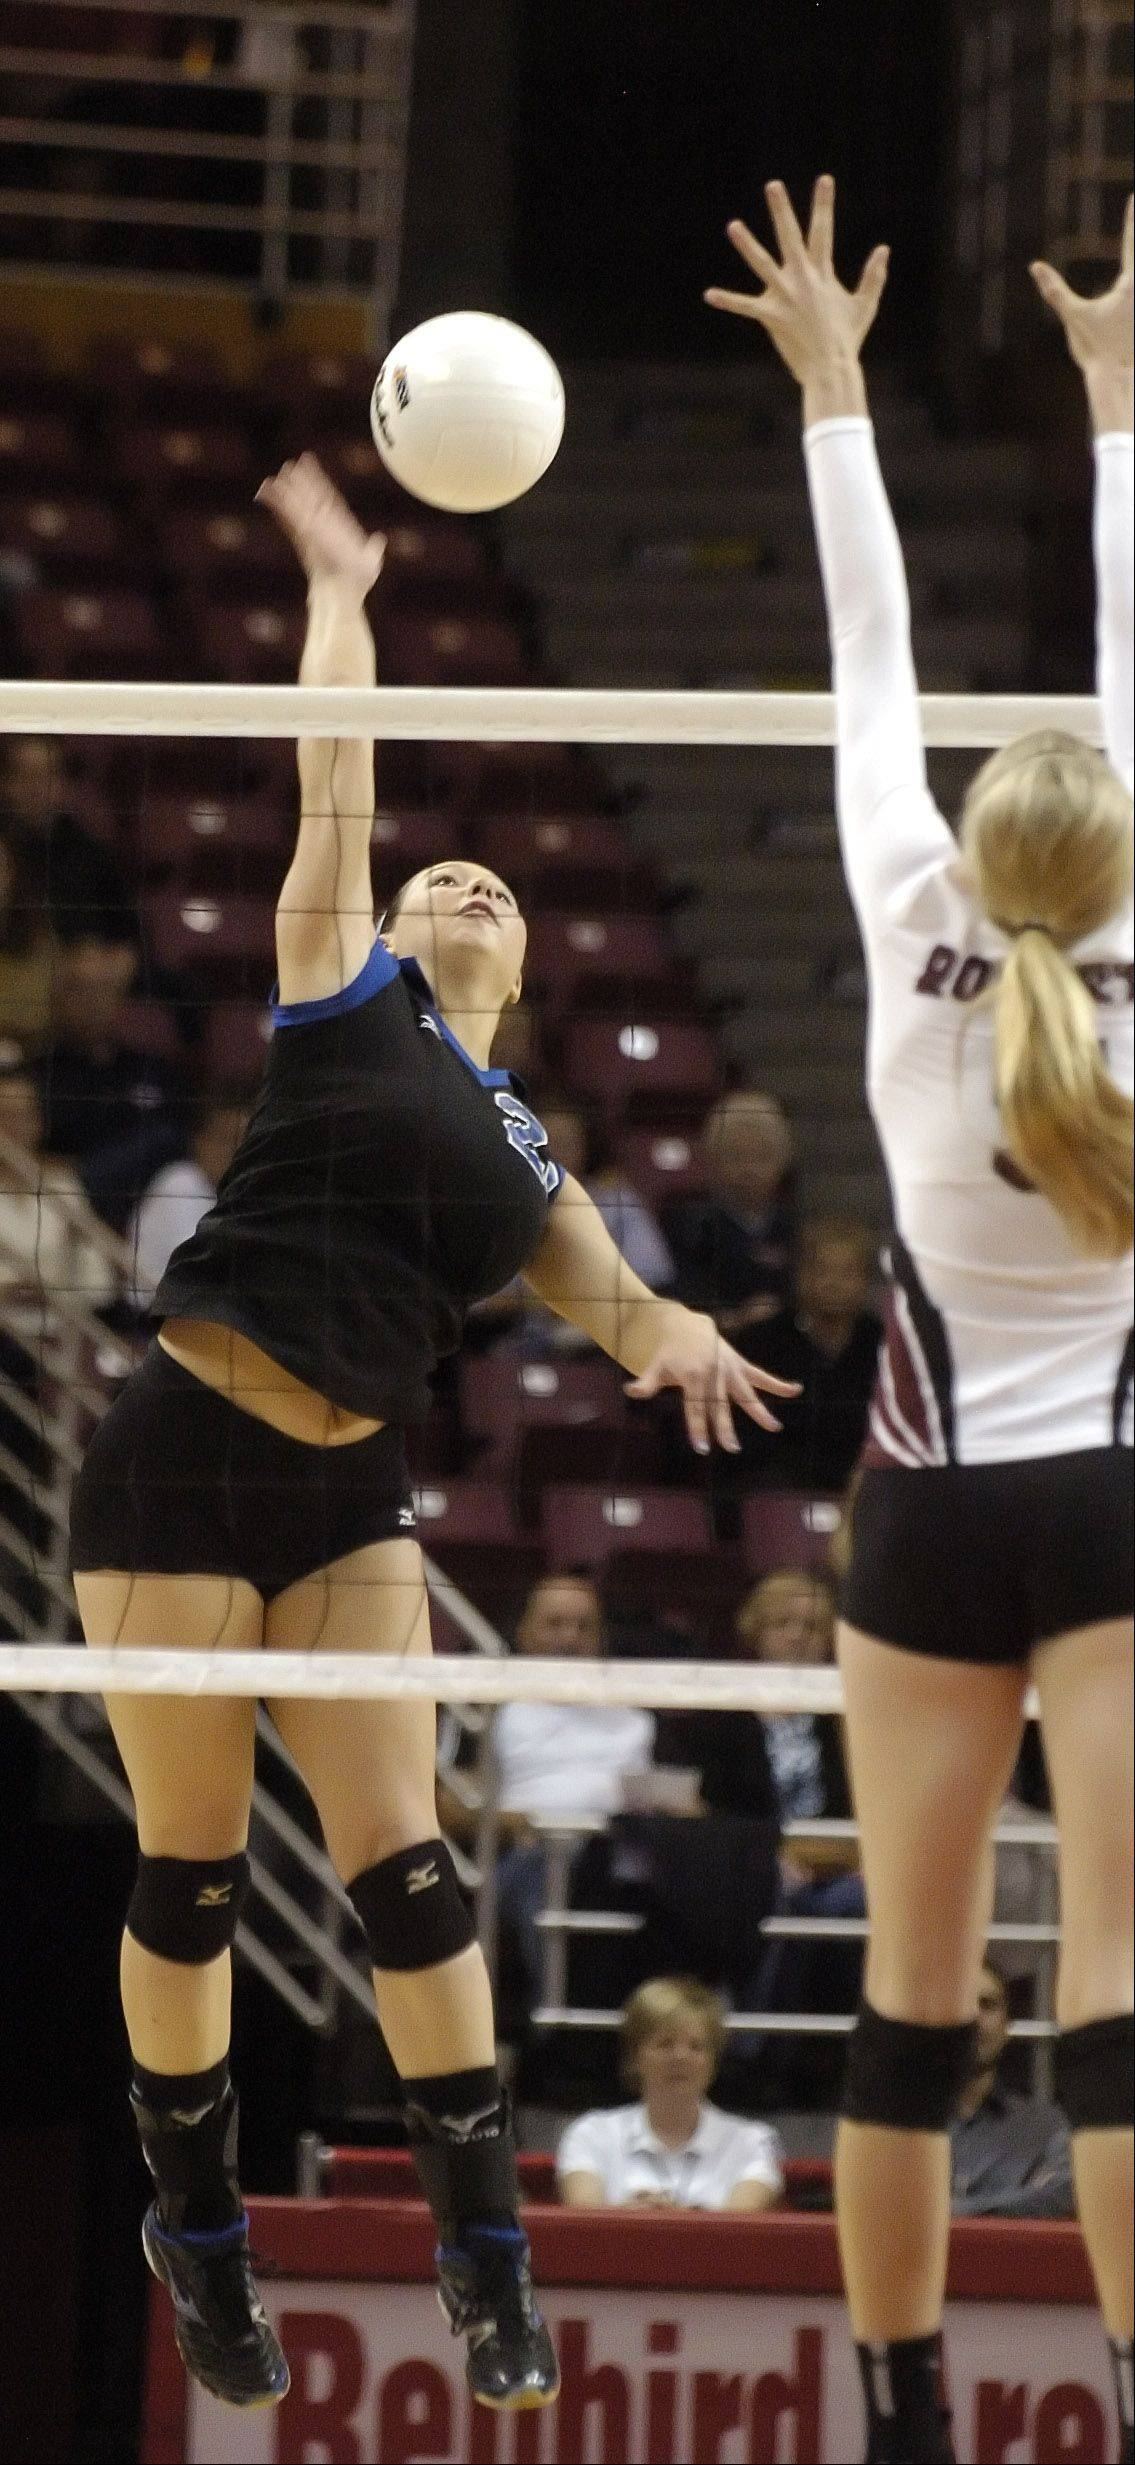 Michelle McLaughlin of St. Francis spikes the ball during the class 3A girls volleyball championship Saturday at Redbird Arena, on Illinois State campus in Bloomington-Normal.